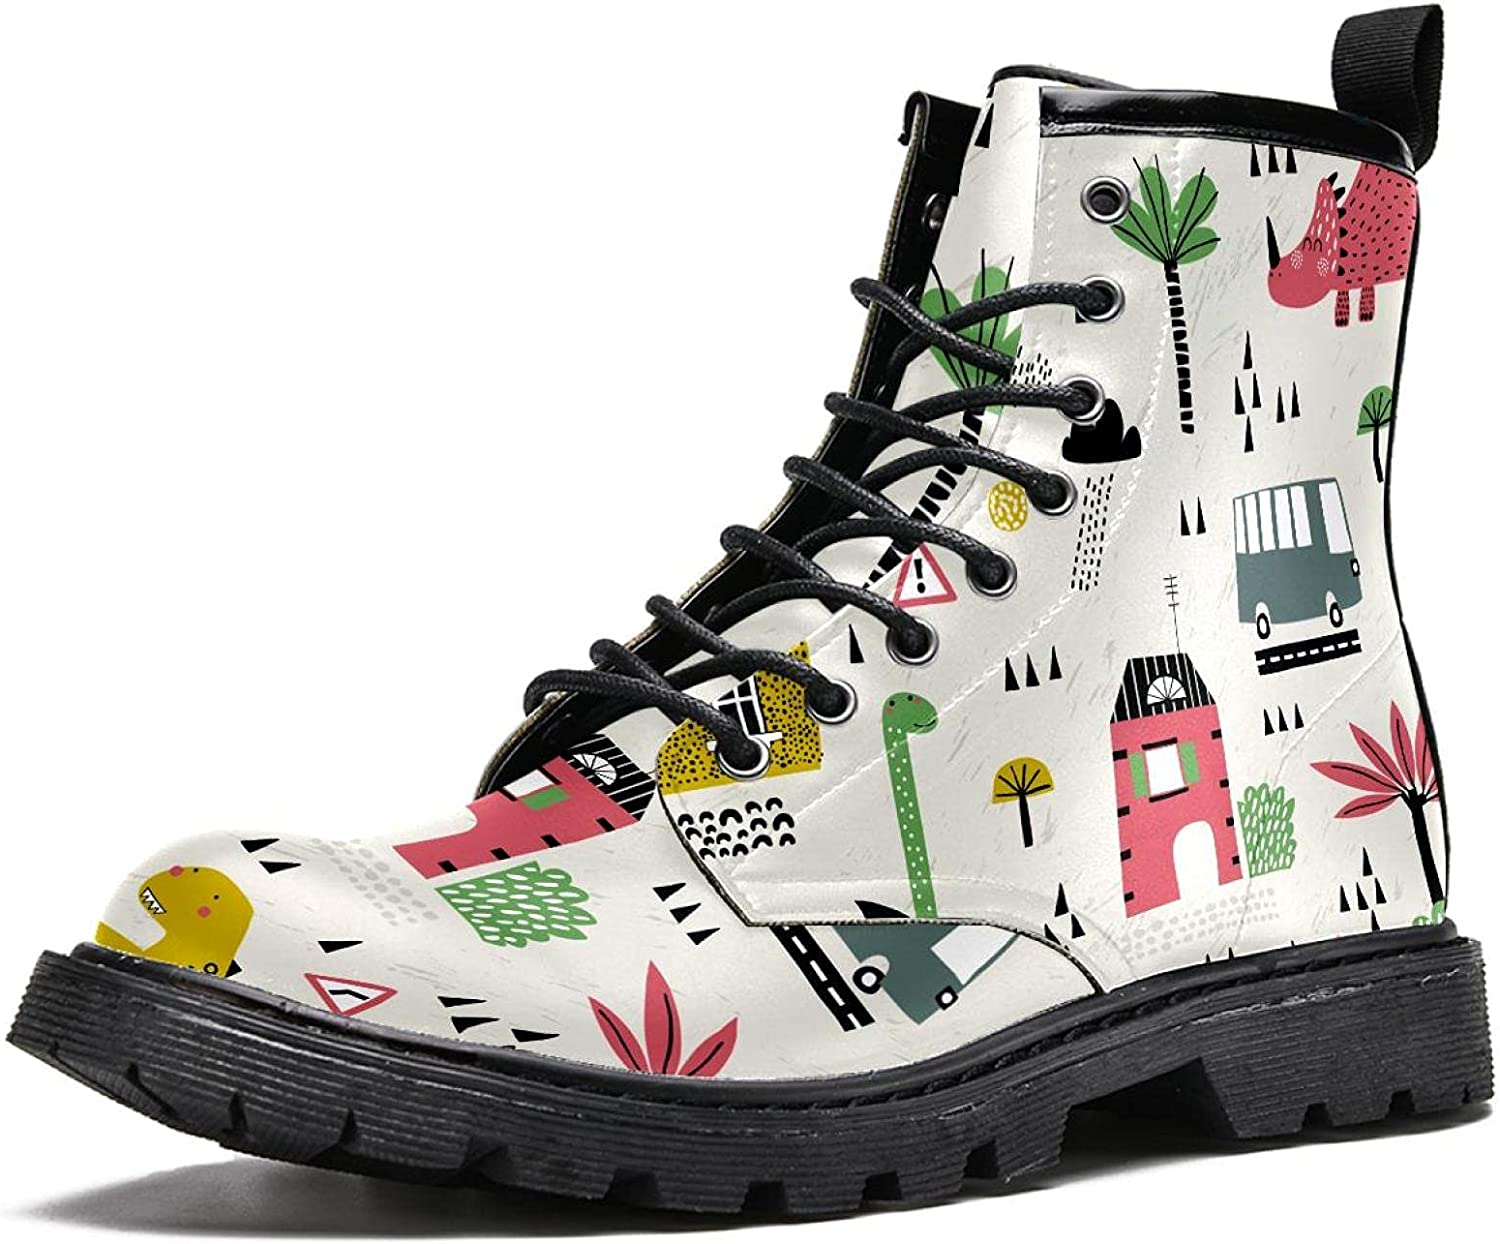 Directly managed store Cartoon city with dinosaurs Men's Max 88% OFF Hiking Top Stylish Boots High